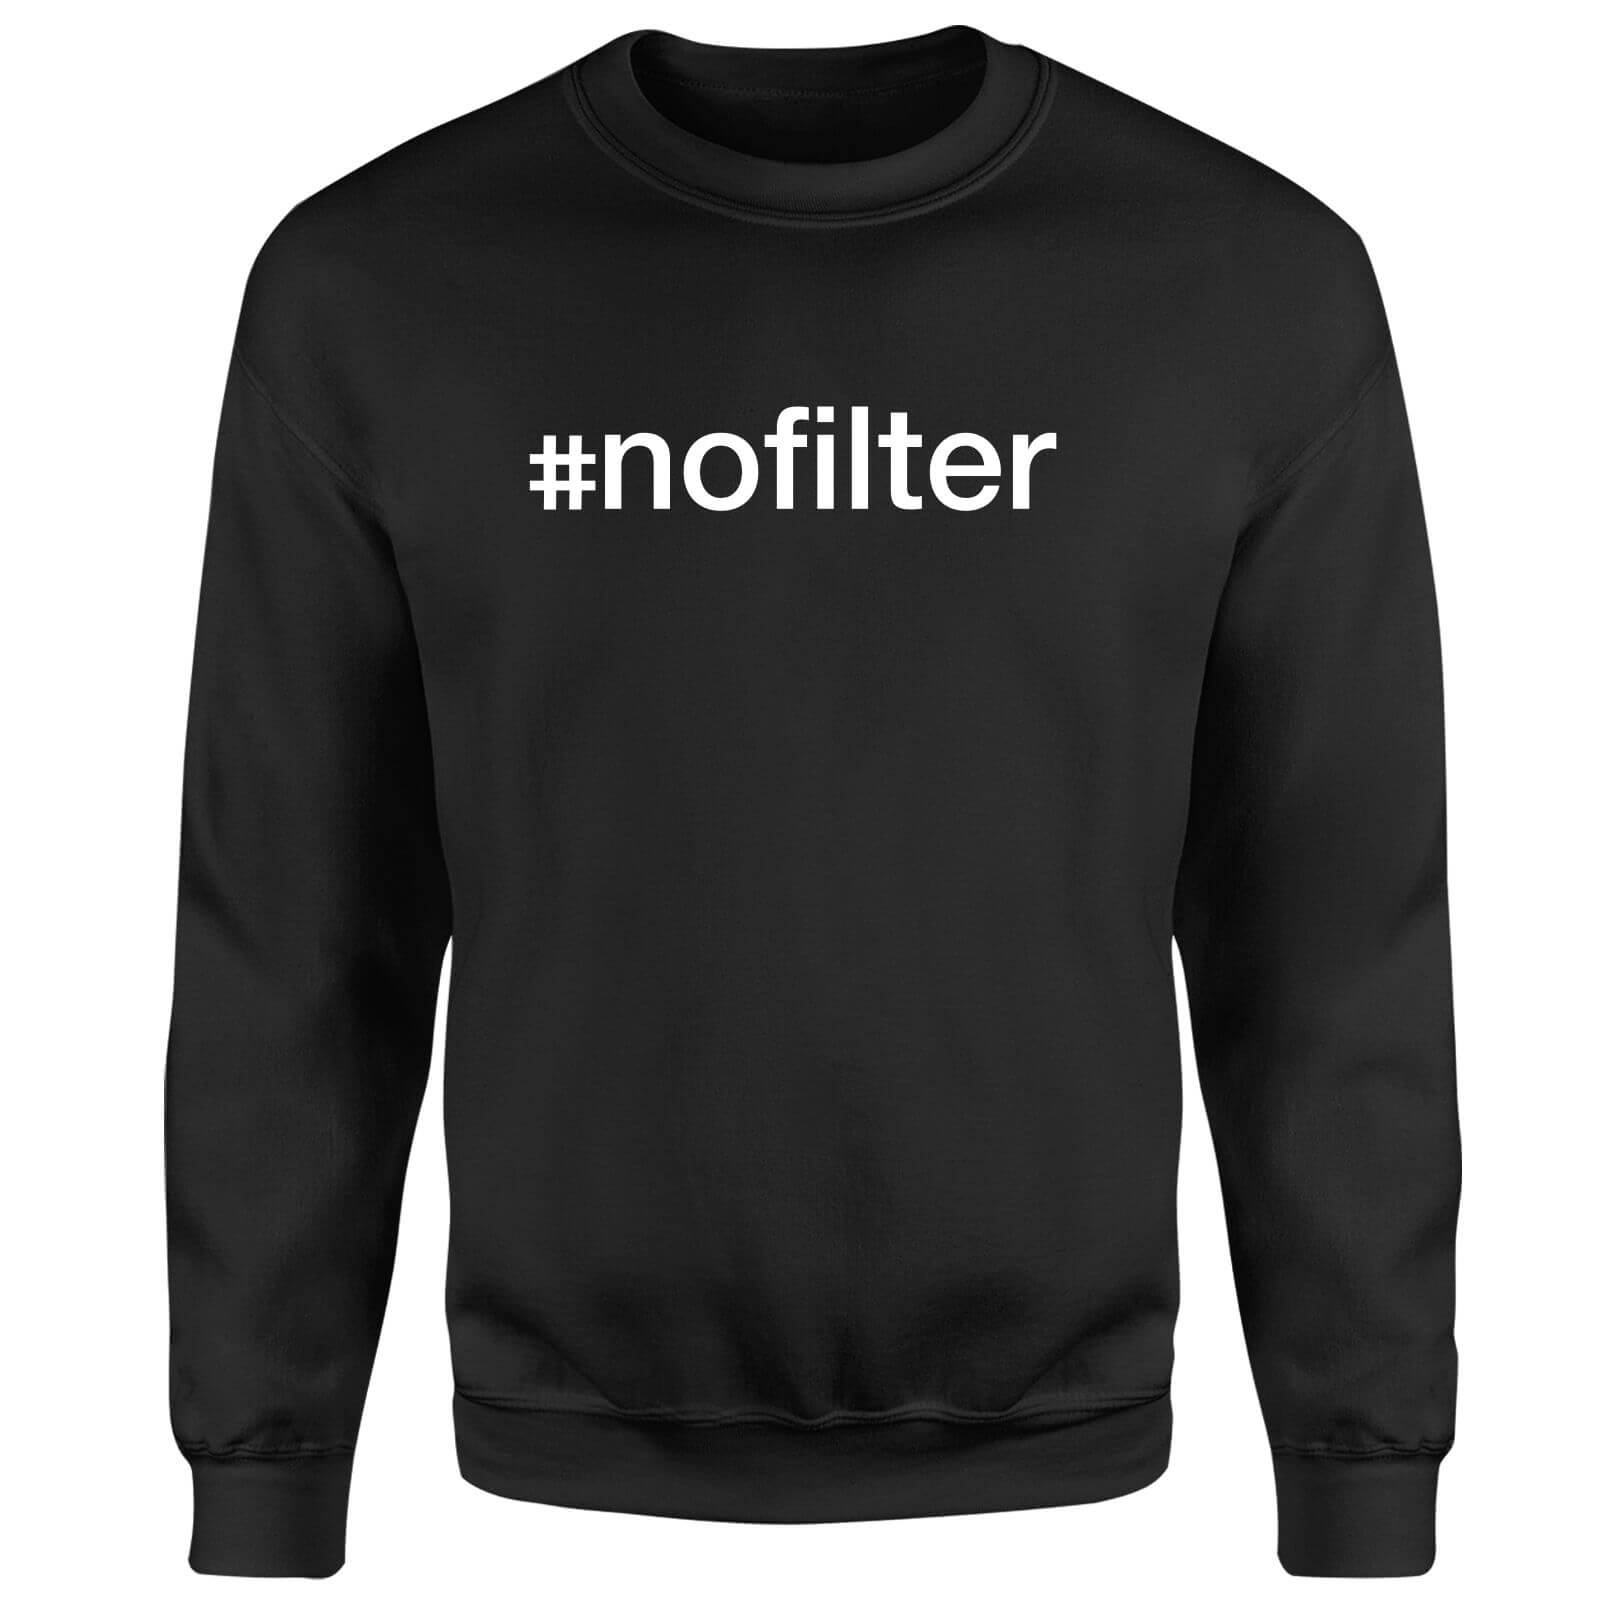 nofilter Sweatshirt - Black